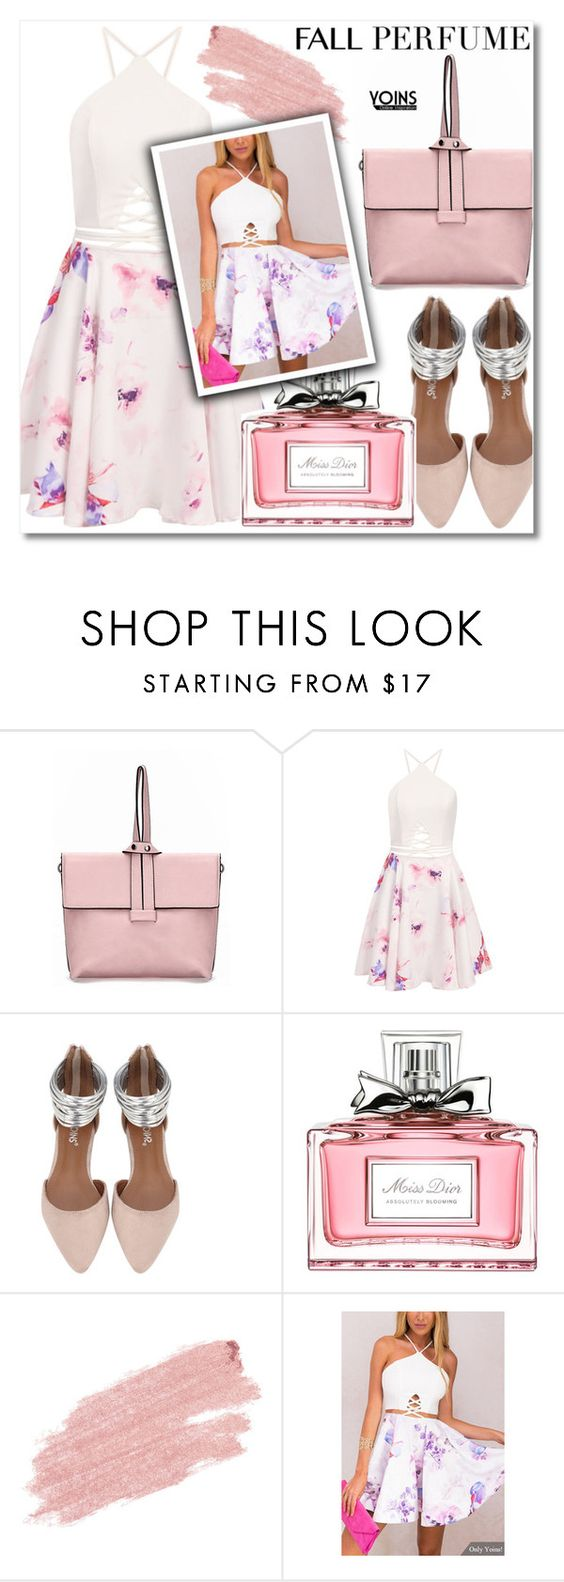 """Yoins"" by enola-pycroft ❤ liked on Polyvore featuring Christian Dior and Jane Iredale"